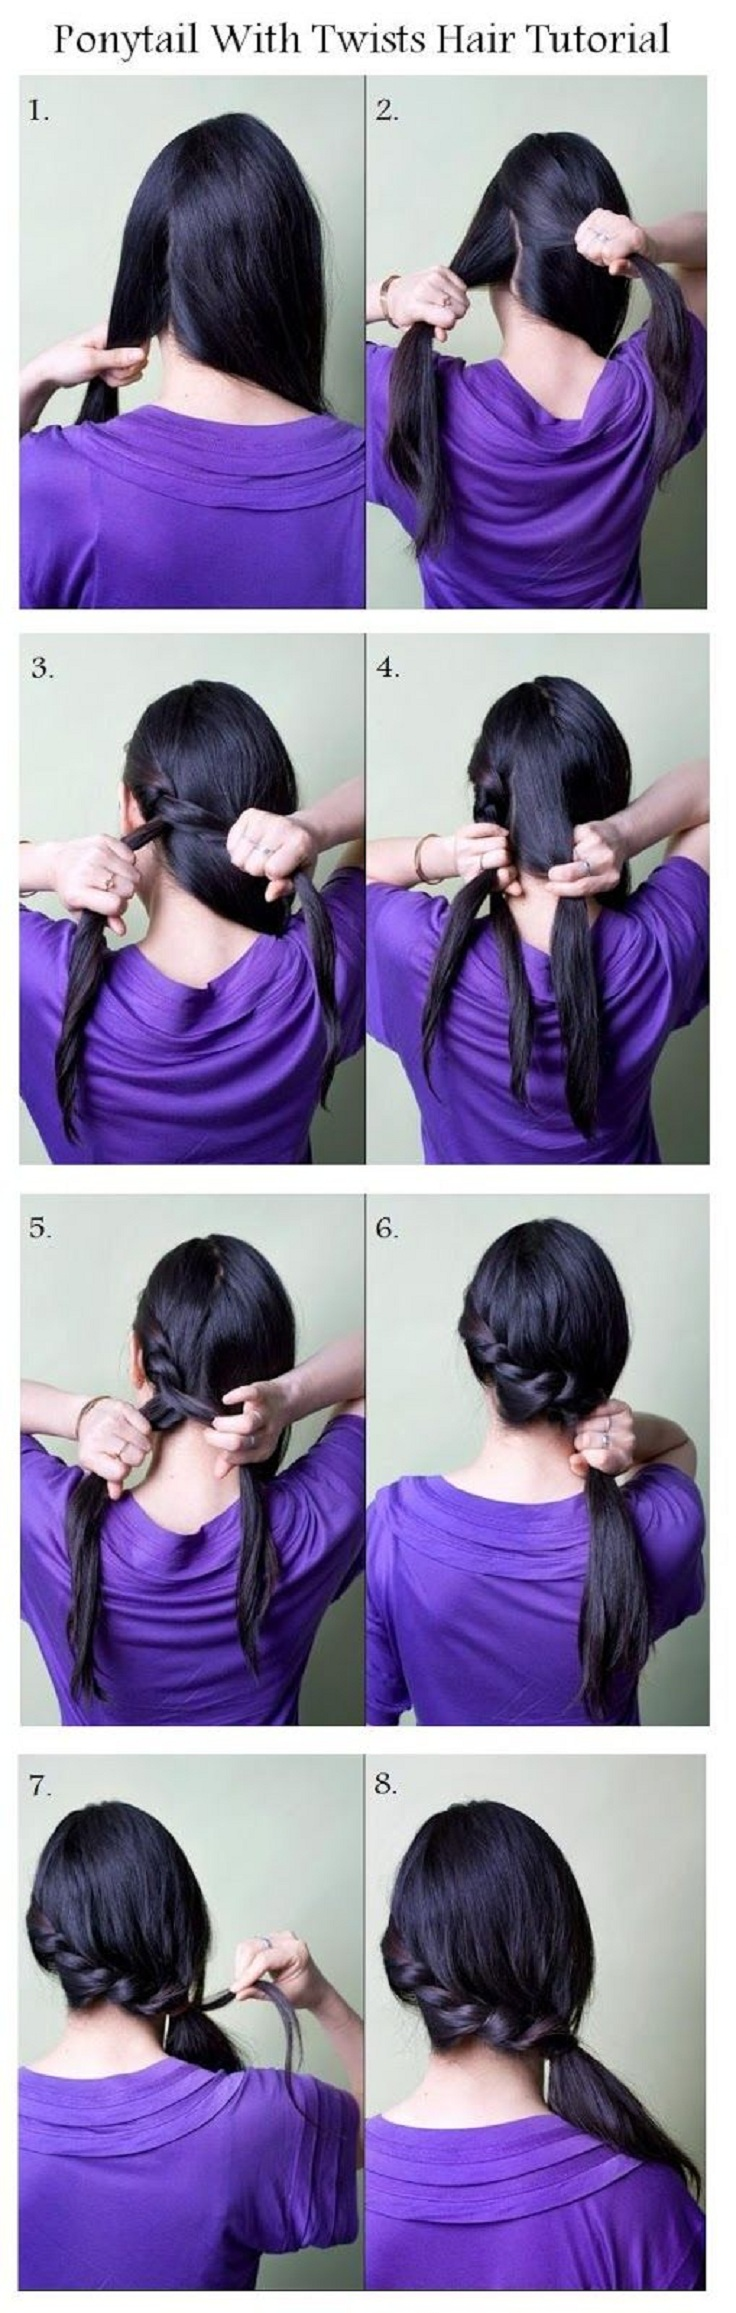 The Braided Pony - 15 Ways to Make Cute Ponytails